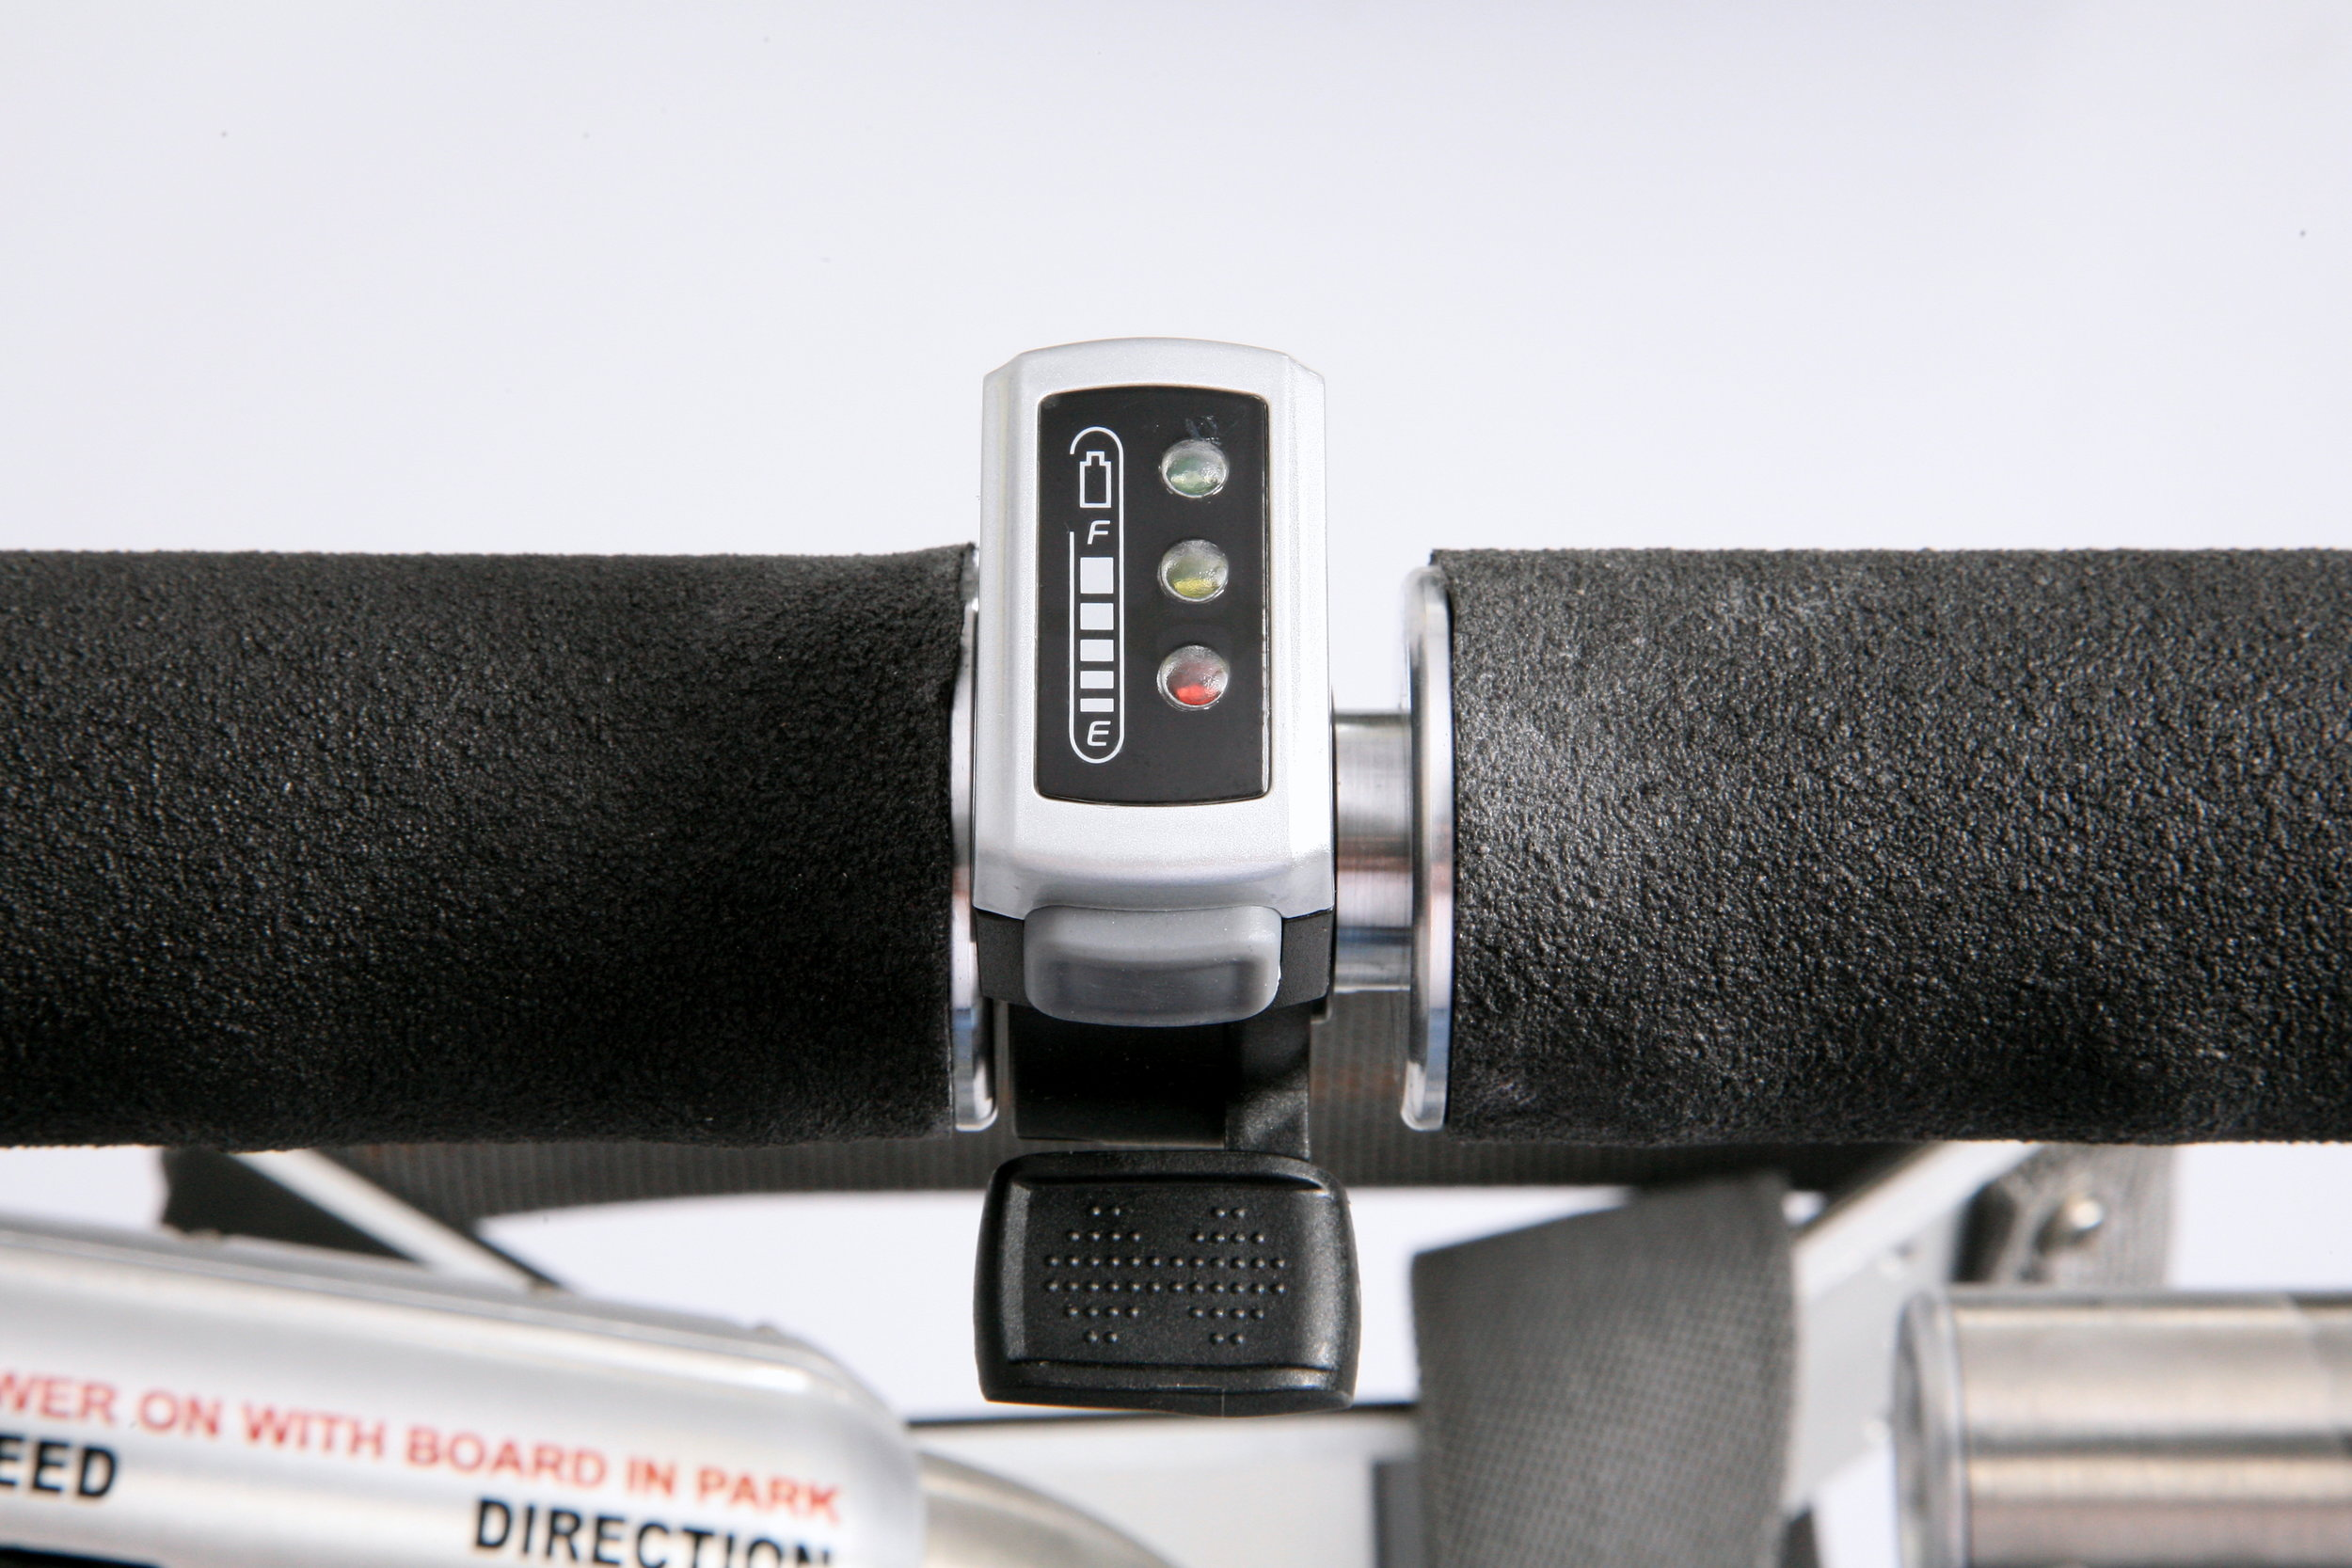 Thumb throttle with one touch speed control and LED battery charge level indicator